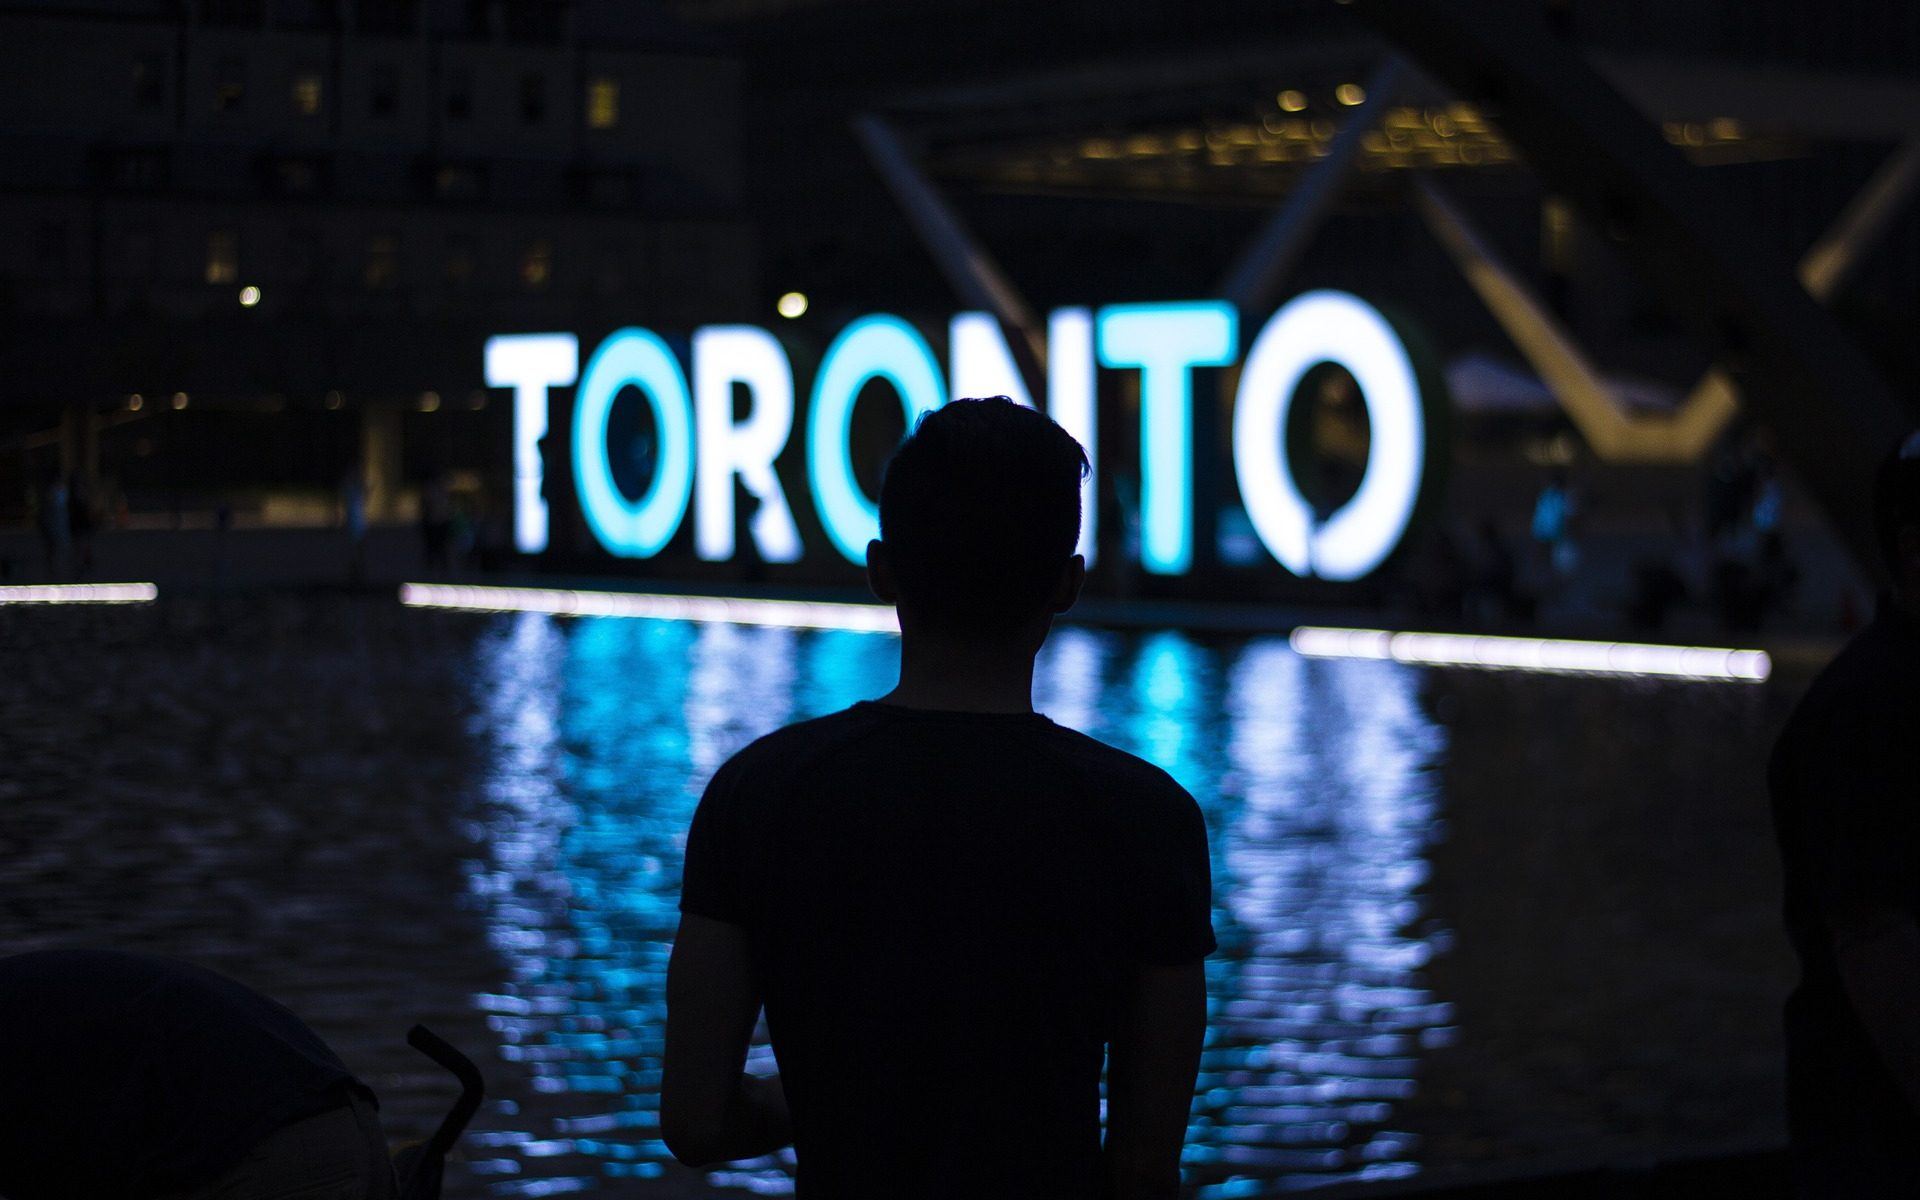 Image showing sign board of Toronto, Canada